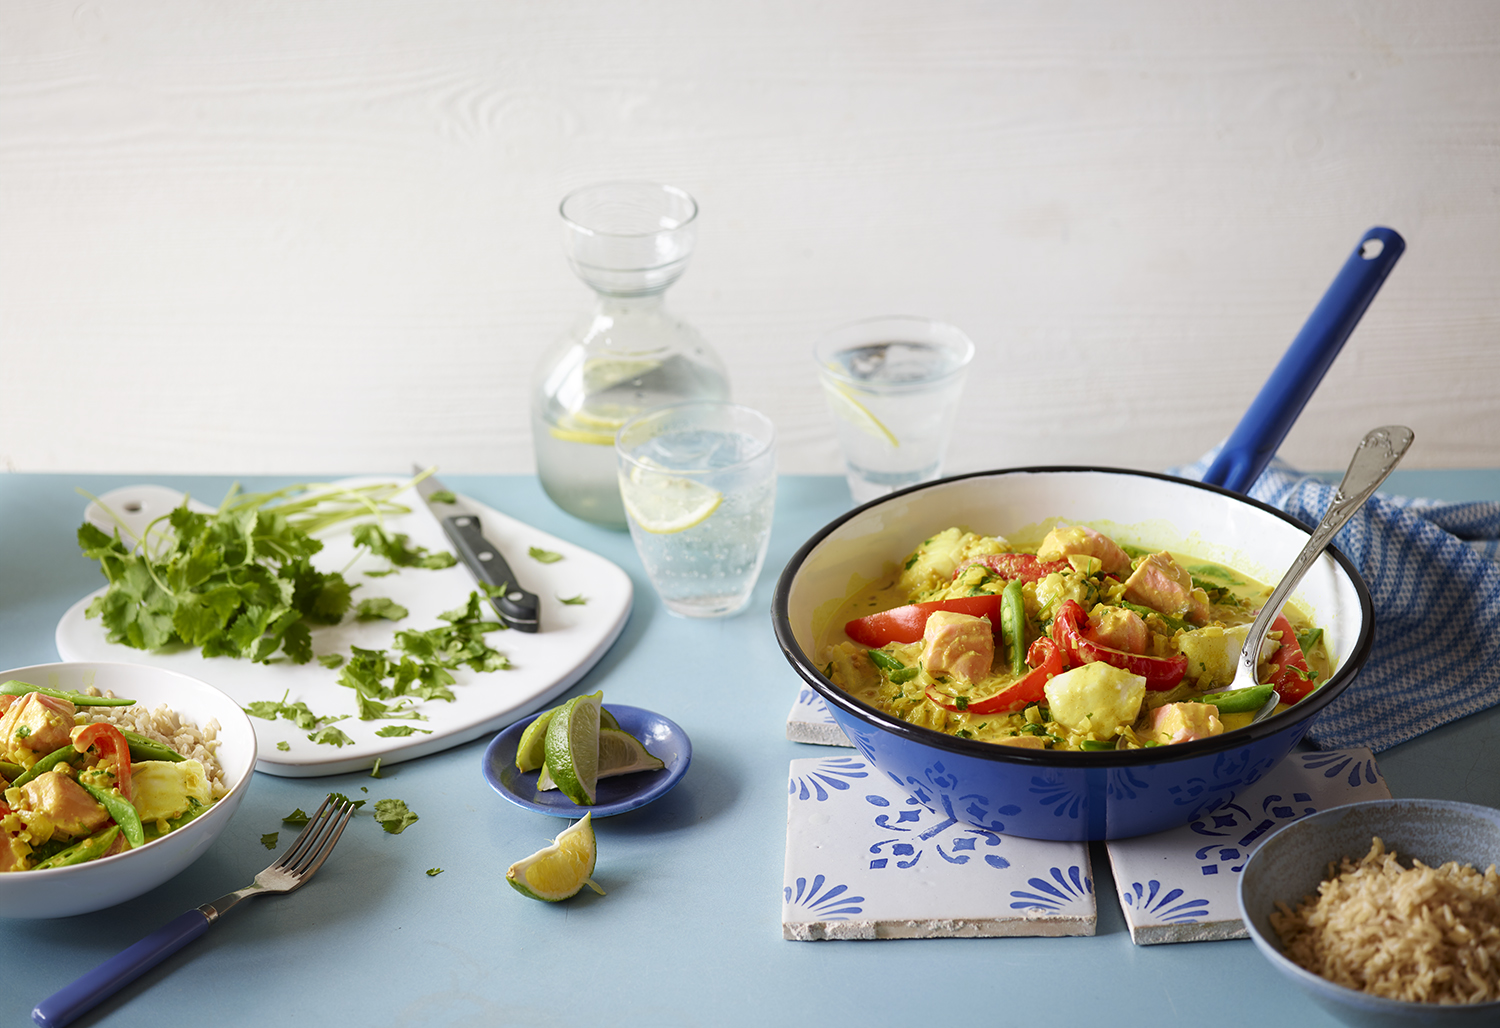 Editorial Food Photography by Lauren Mclean - Eat Healthy- Issue One - FishCurry